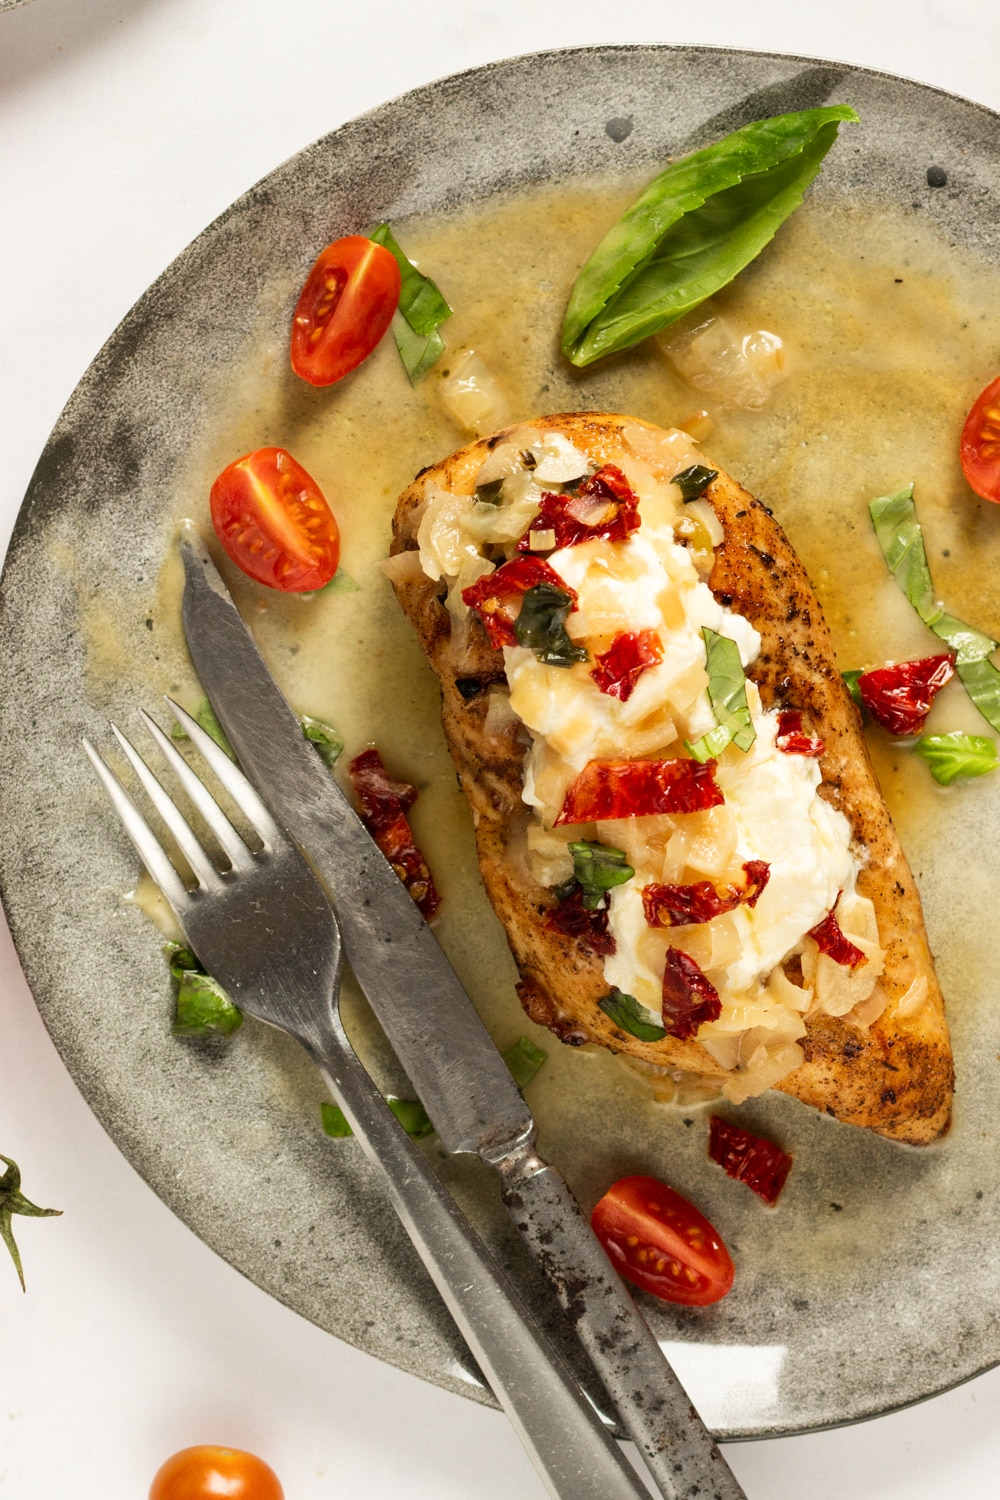 AA chicken breast on a grey plate. There is a fork and a knife next to the chicken breast. The top of the chicken has cheese, sun-dried tomatoes, and basil on it.